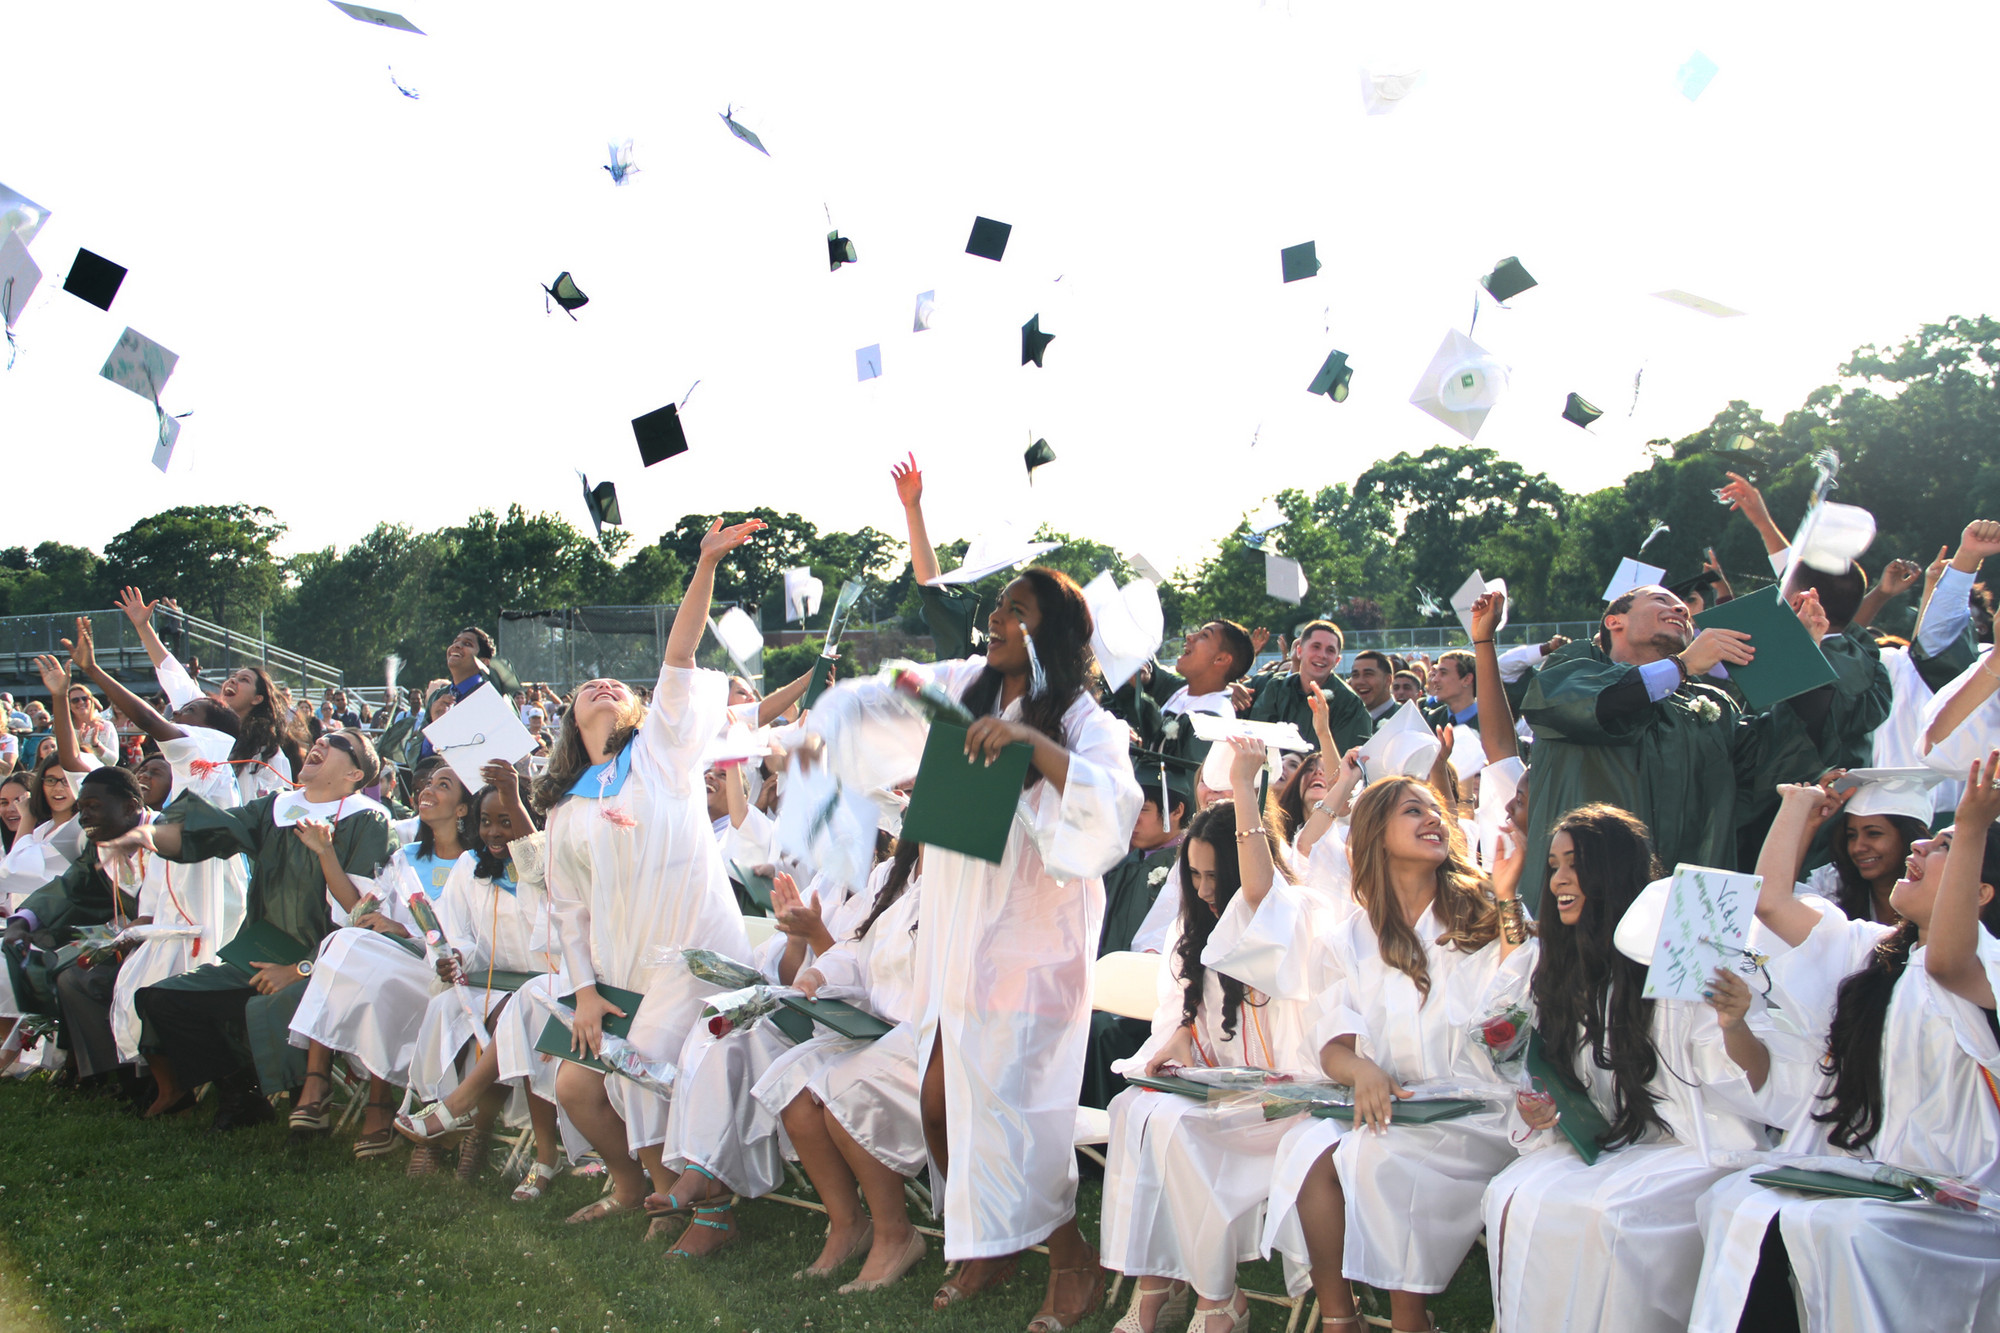 After Six years at Valley Stream North High, graduates celebrated their successful completion of school on June 21.